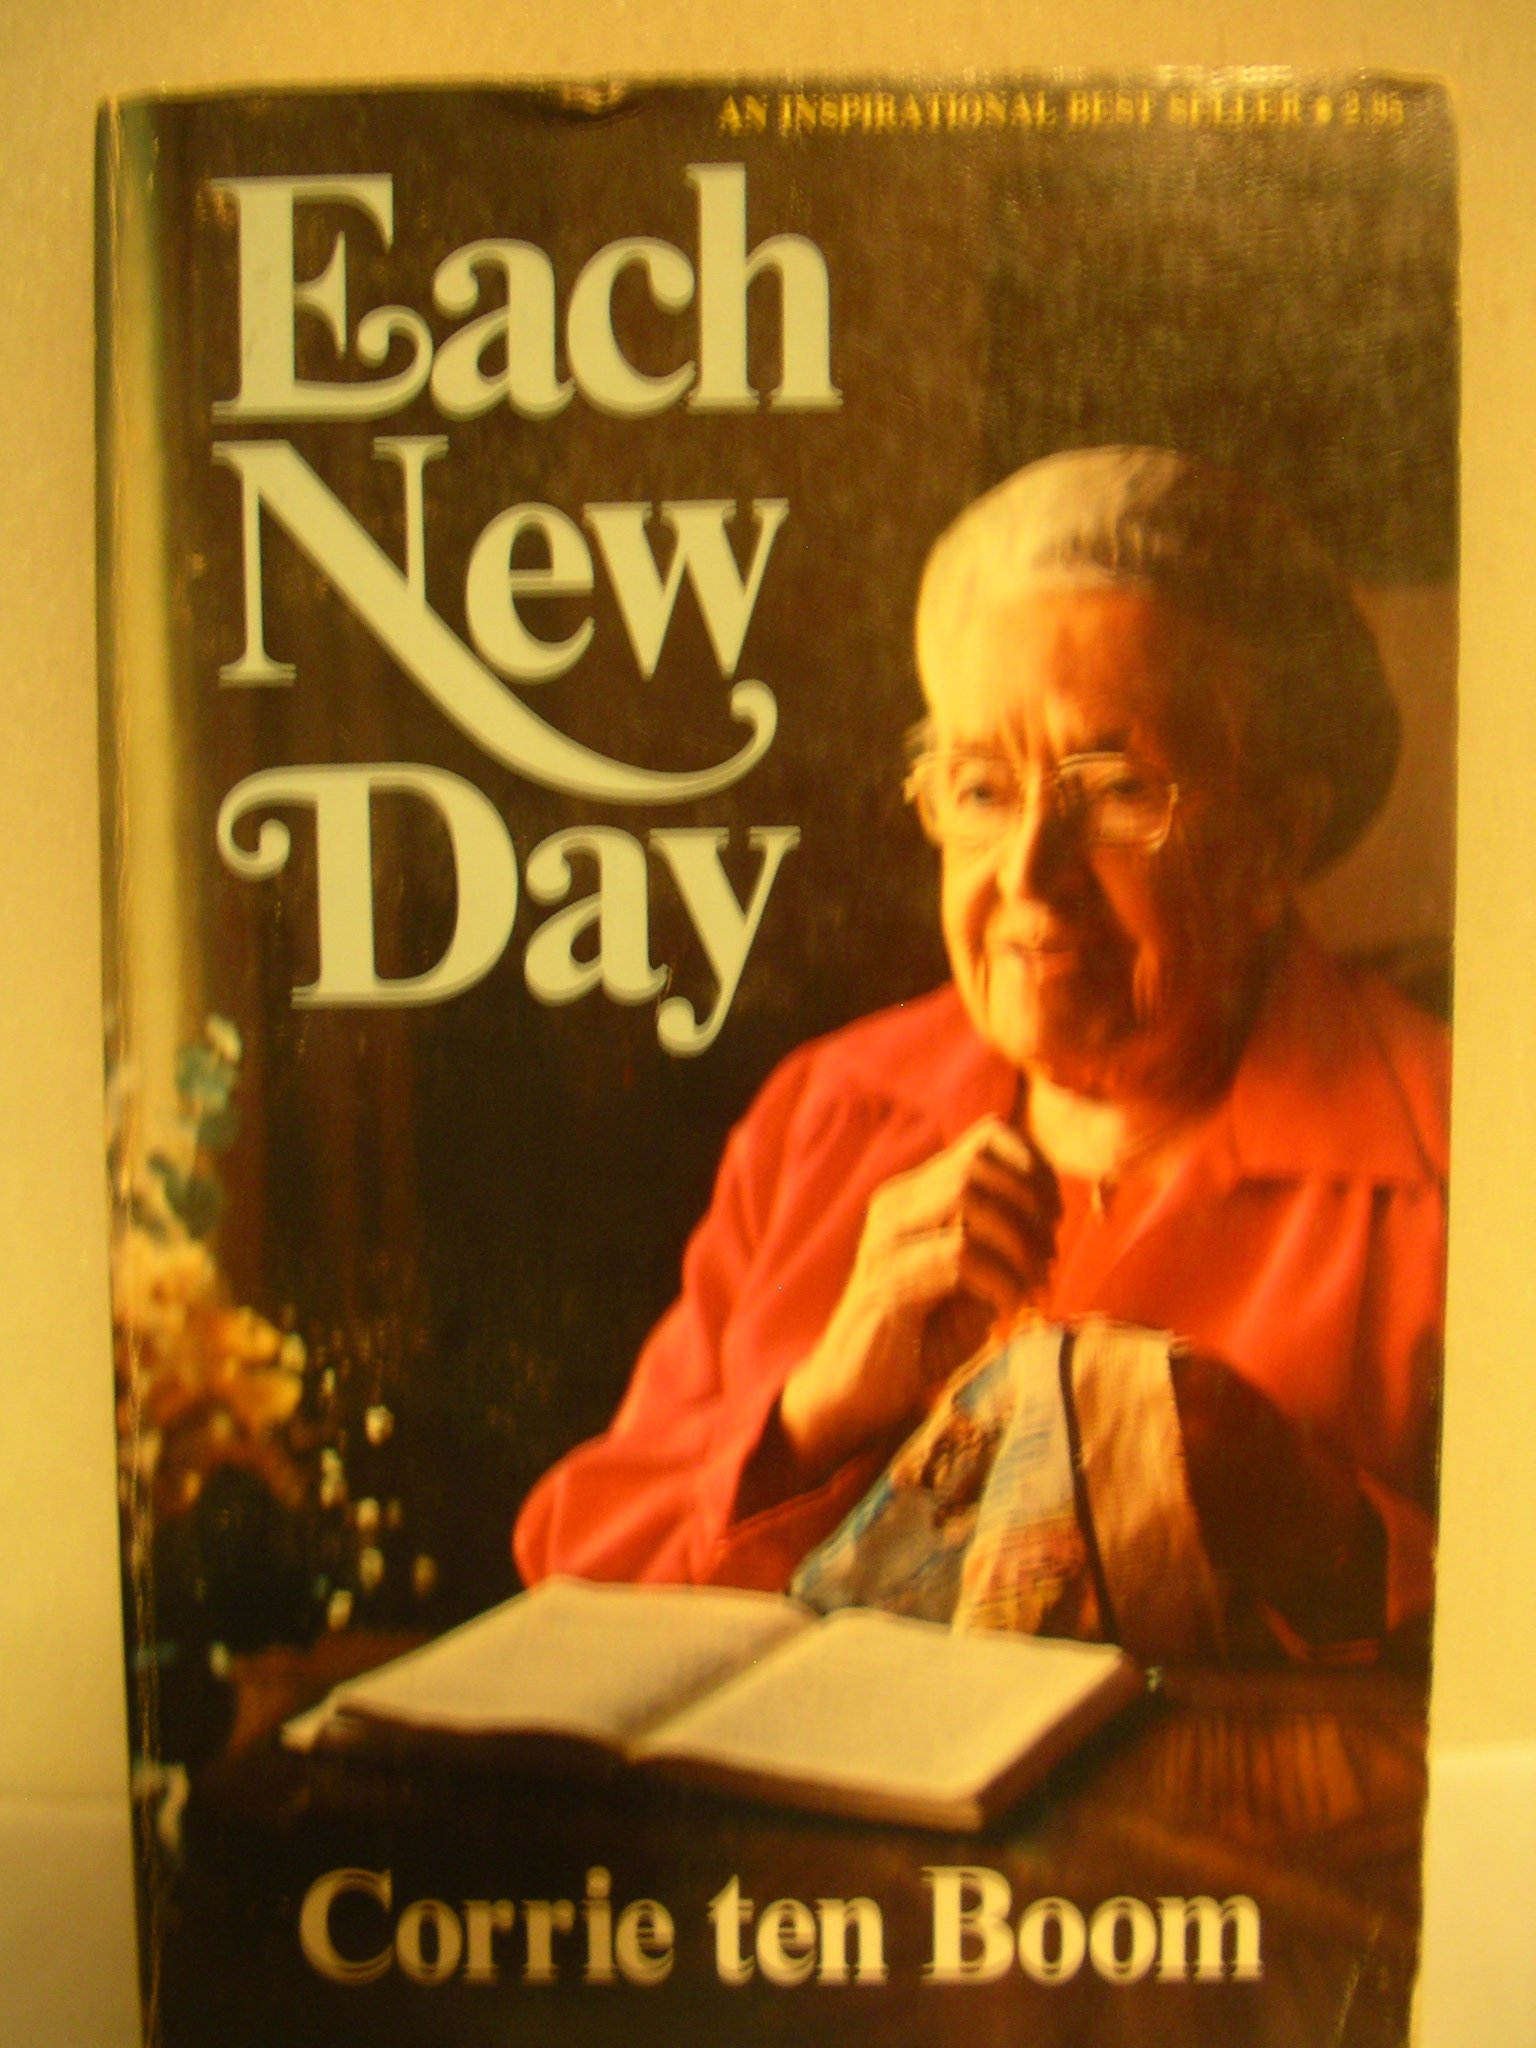 Each new day 365 simple reflections corrie ten boom 9780890660072 amazon com books